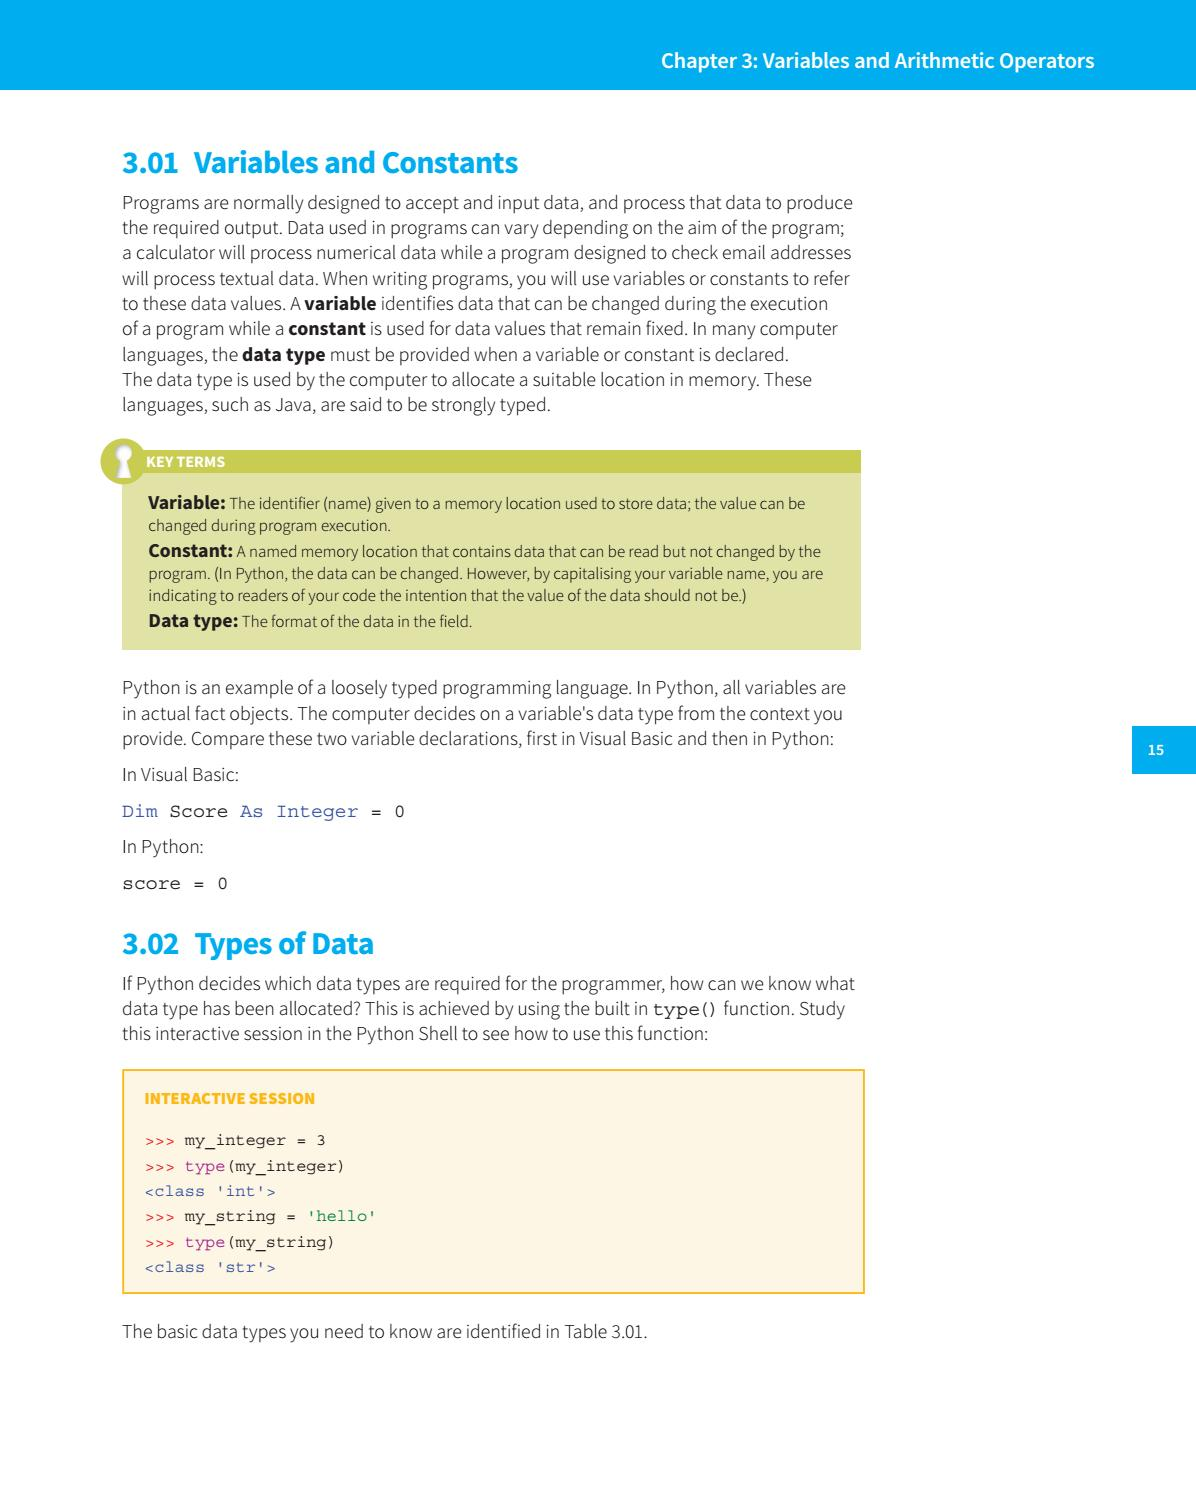 Preview Cambridge IGCSE Computer Science Programming Book for Python